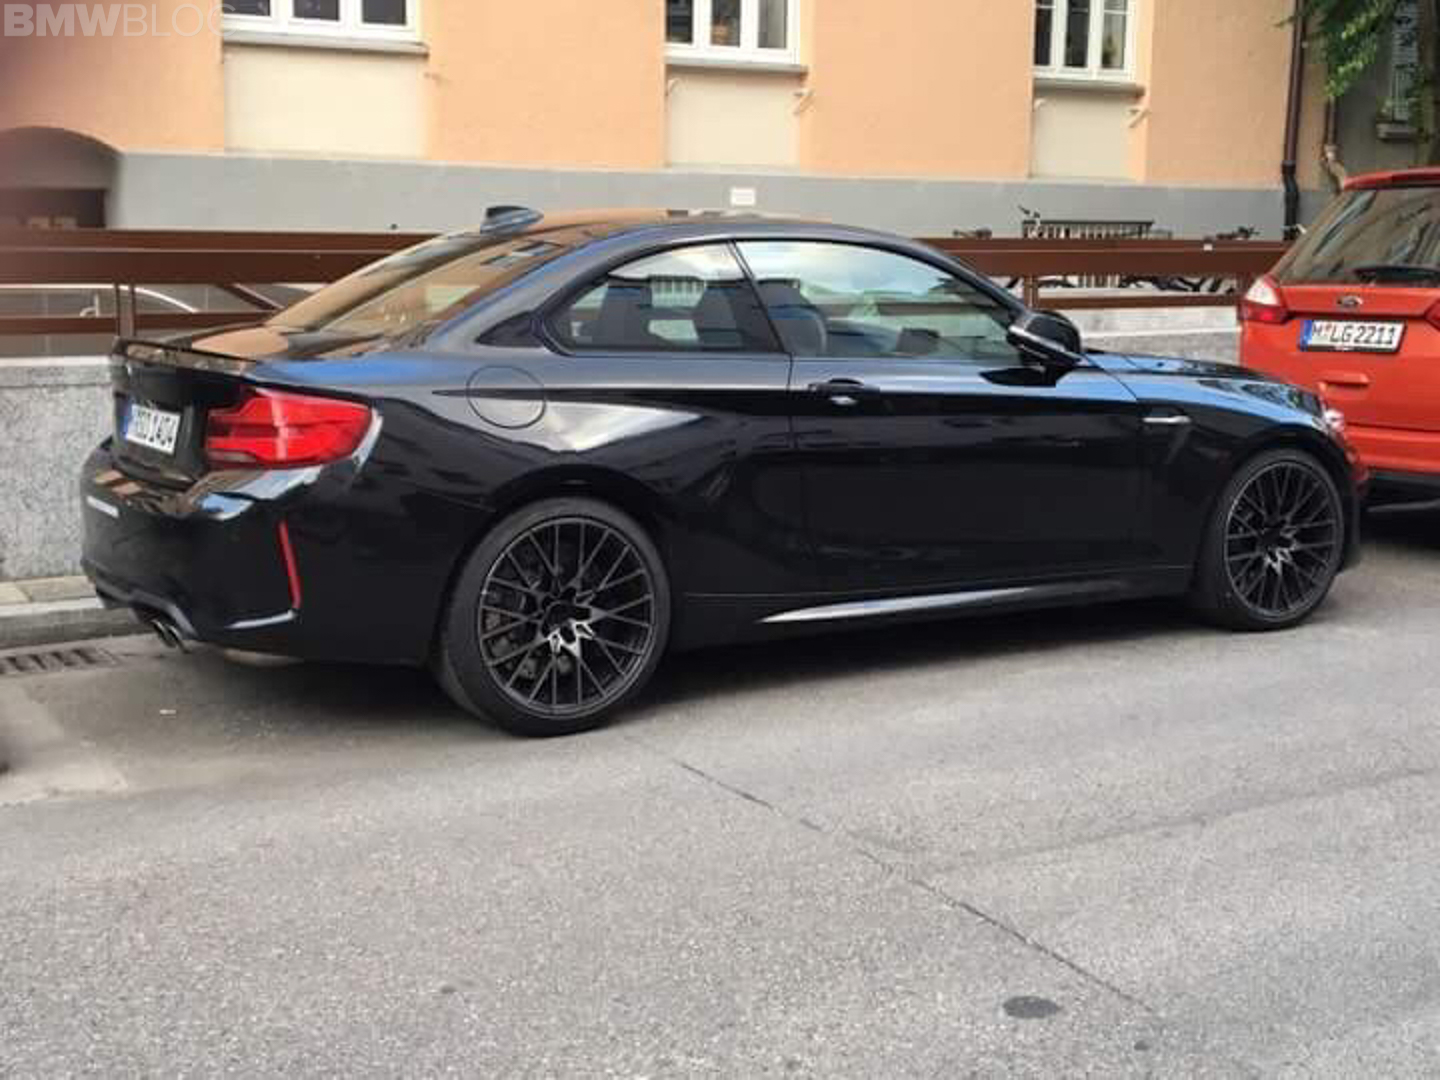 SPIED: BMW M2 Competition Caught In Munich